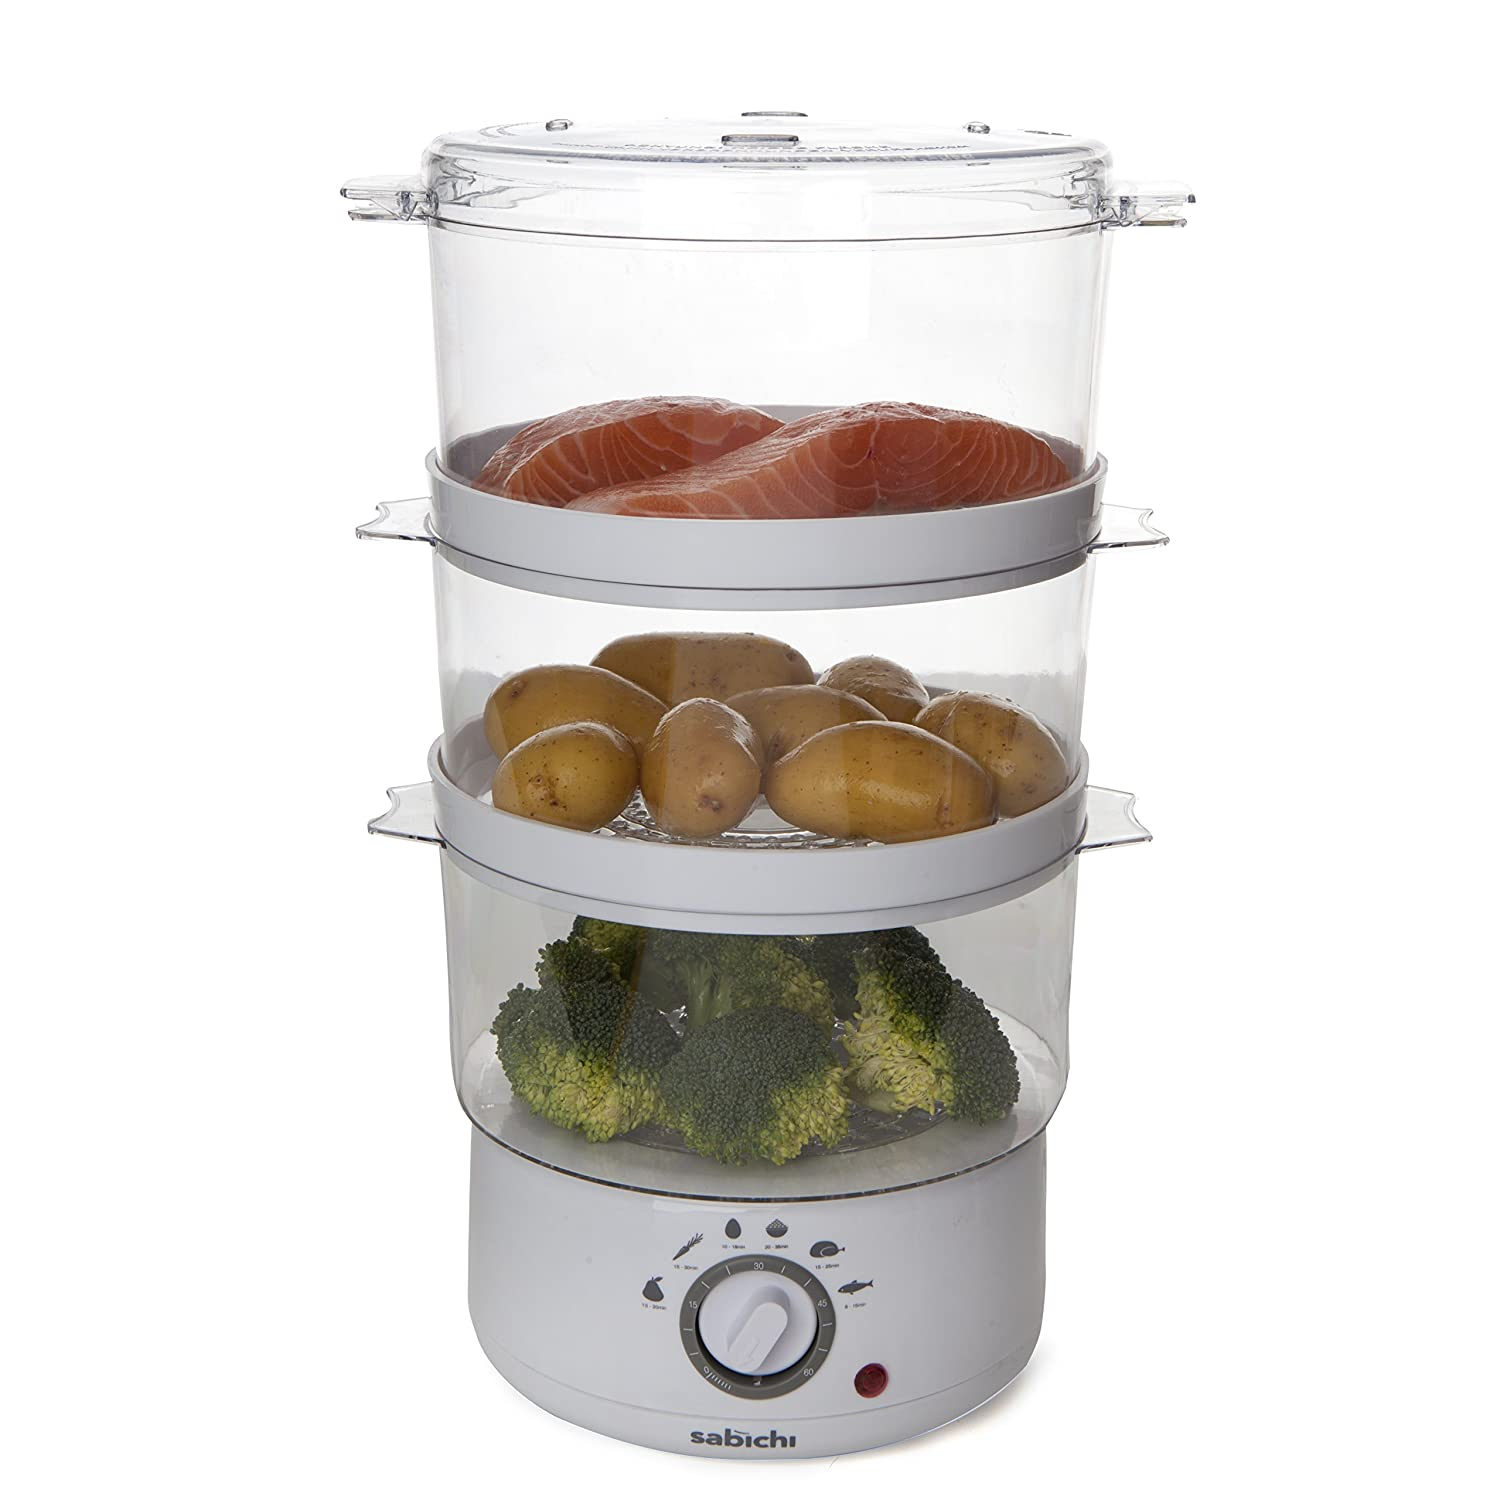 3 Tier Electric Steamer ~ Tier electric food vegetable steamer compact liter